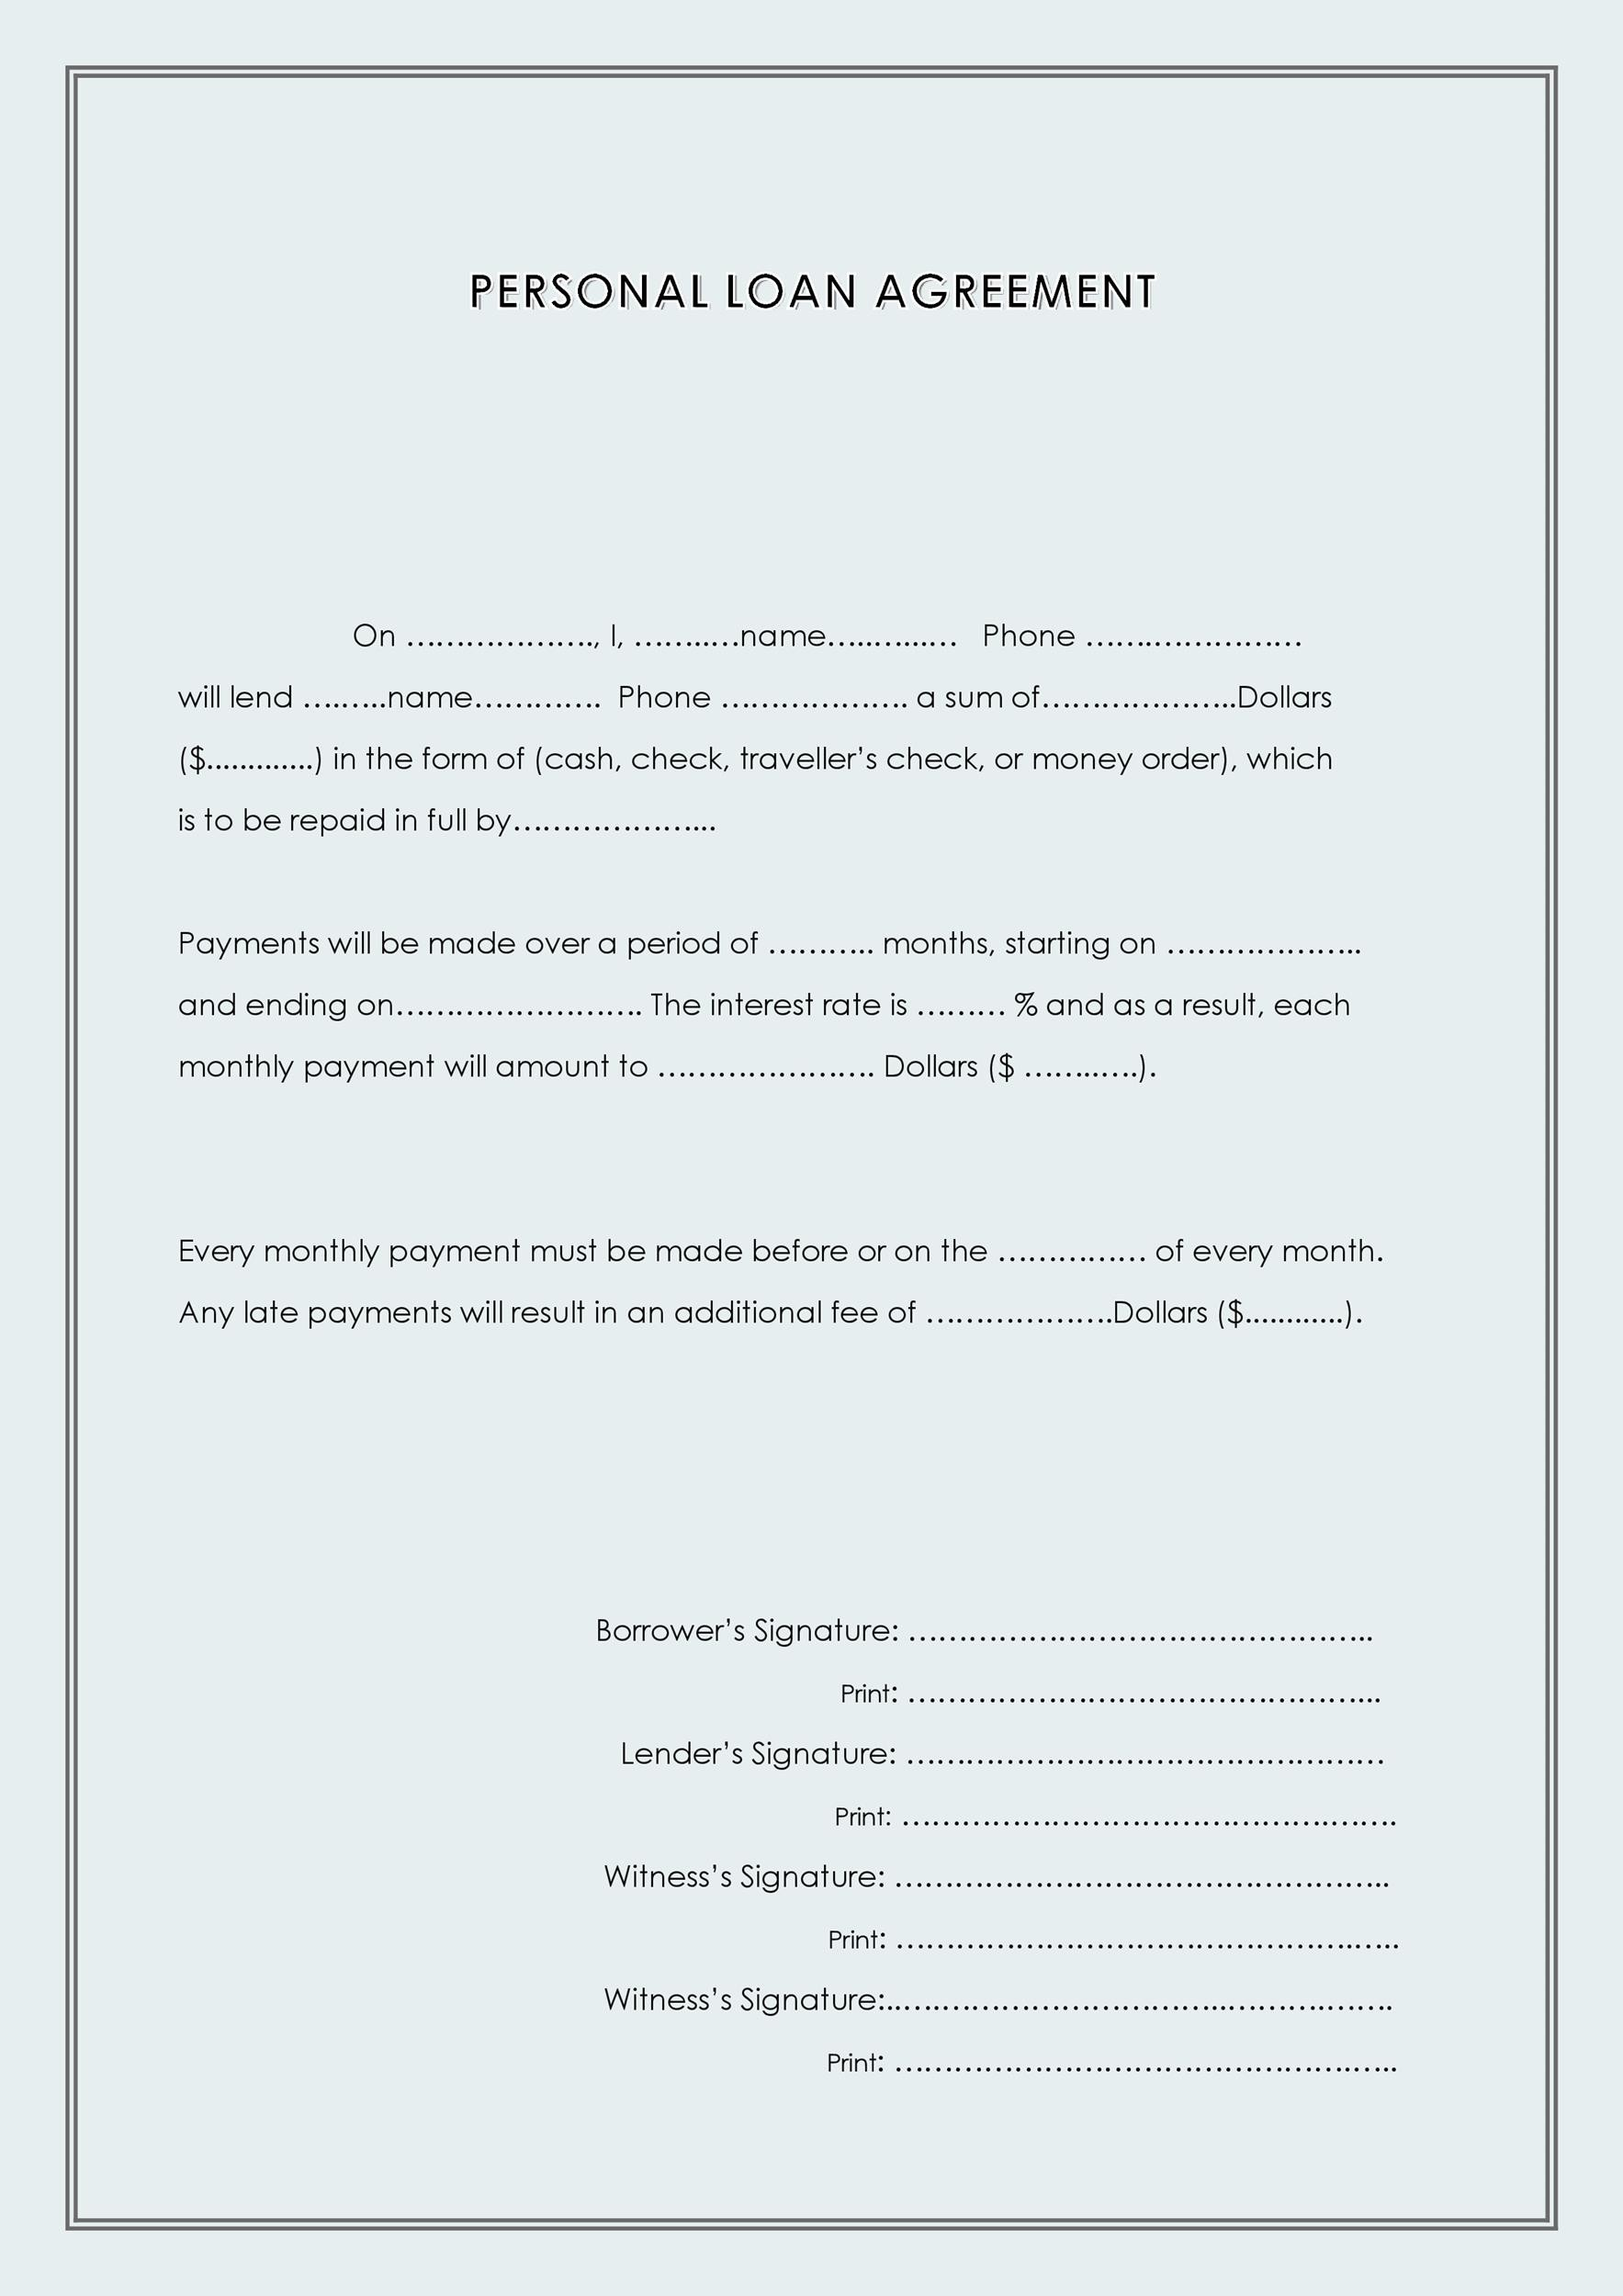 Free loan agreement template 36